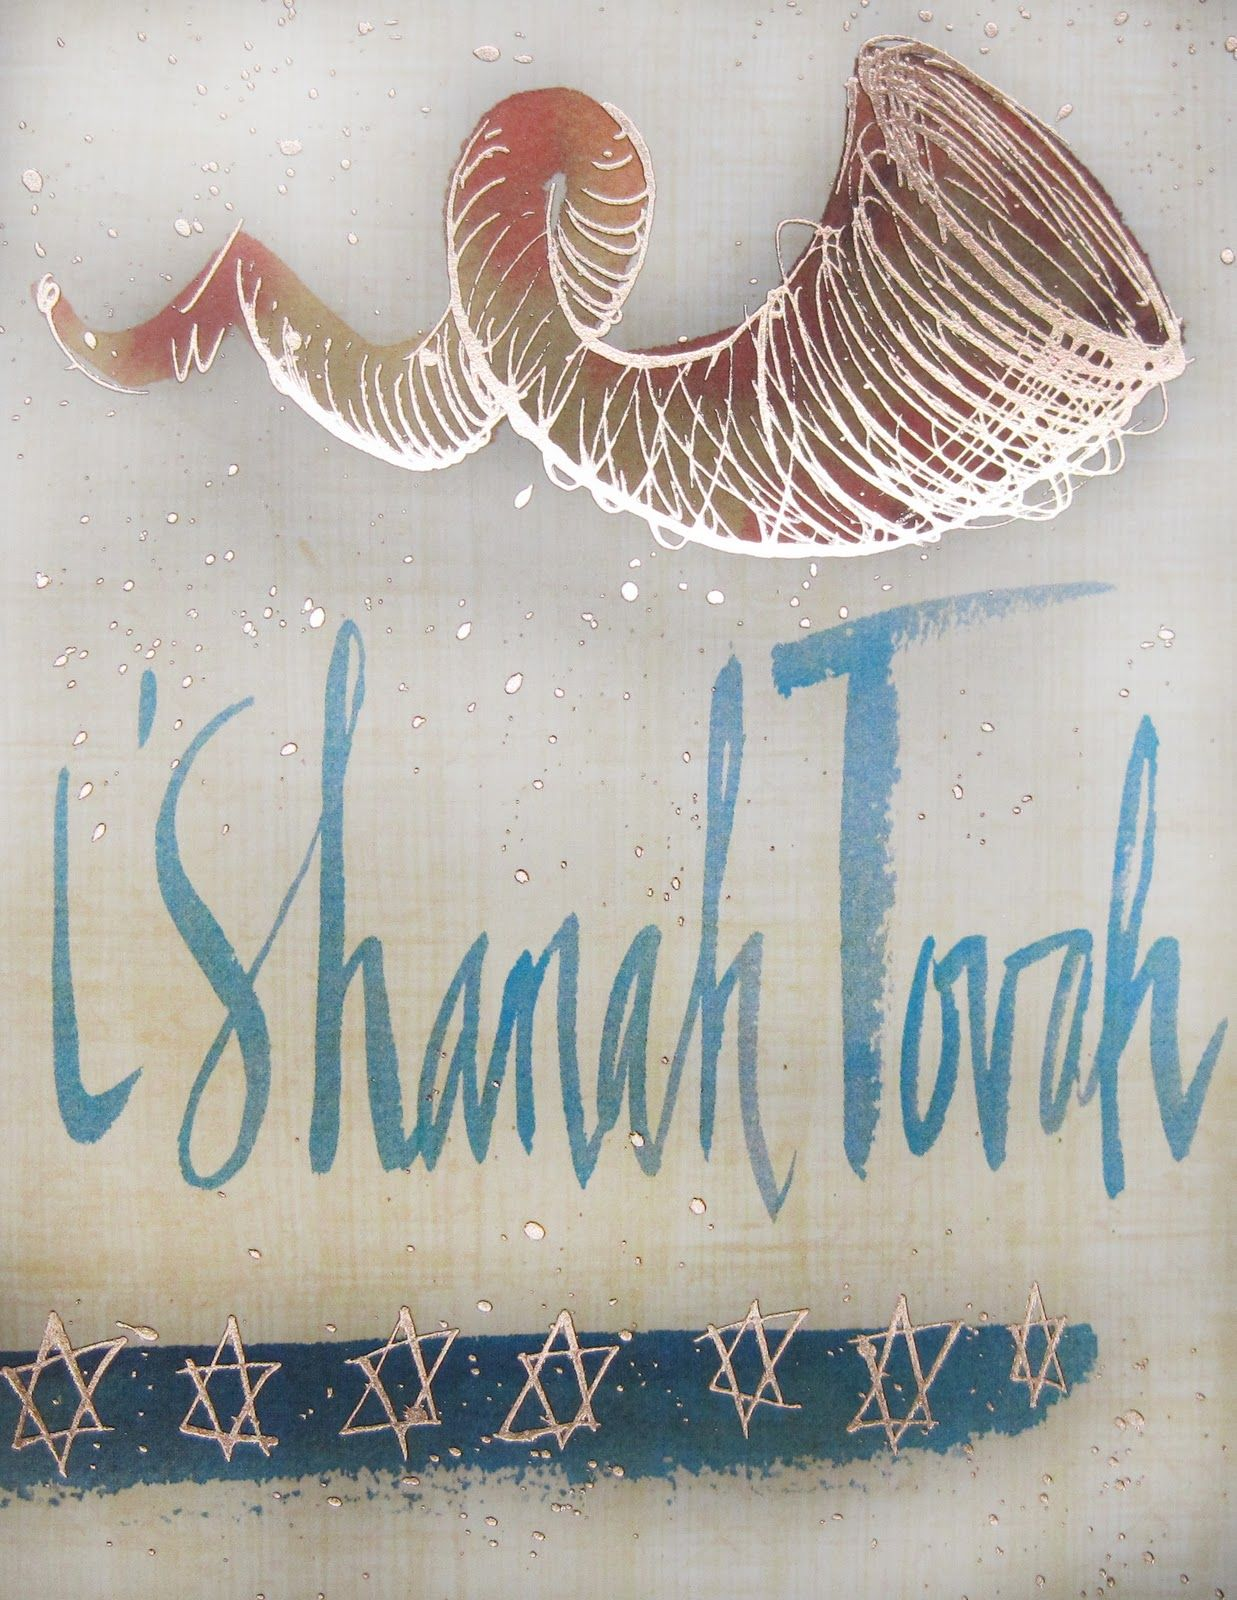 Wishing All Who Observe A Happy Rosh Hashanah And A Year Filled With